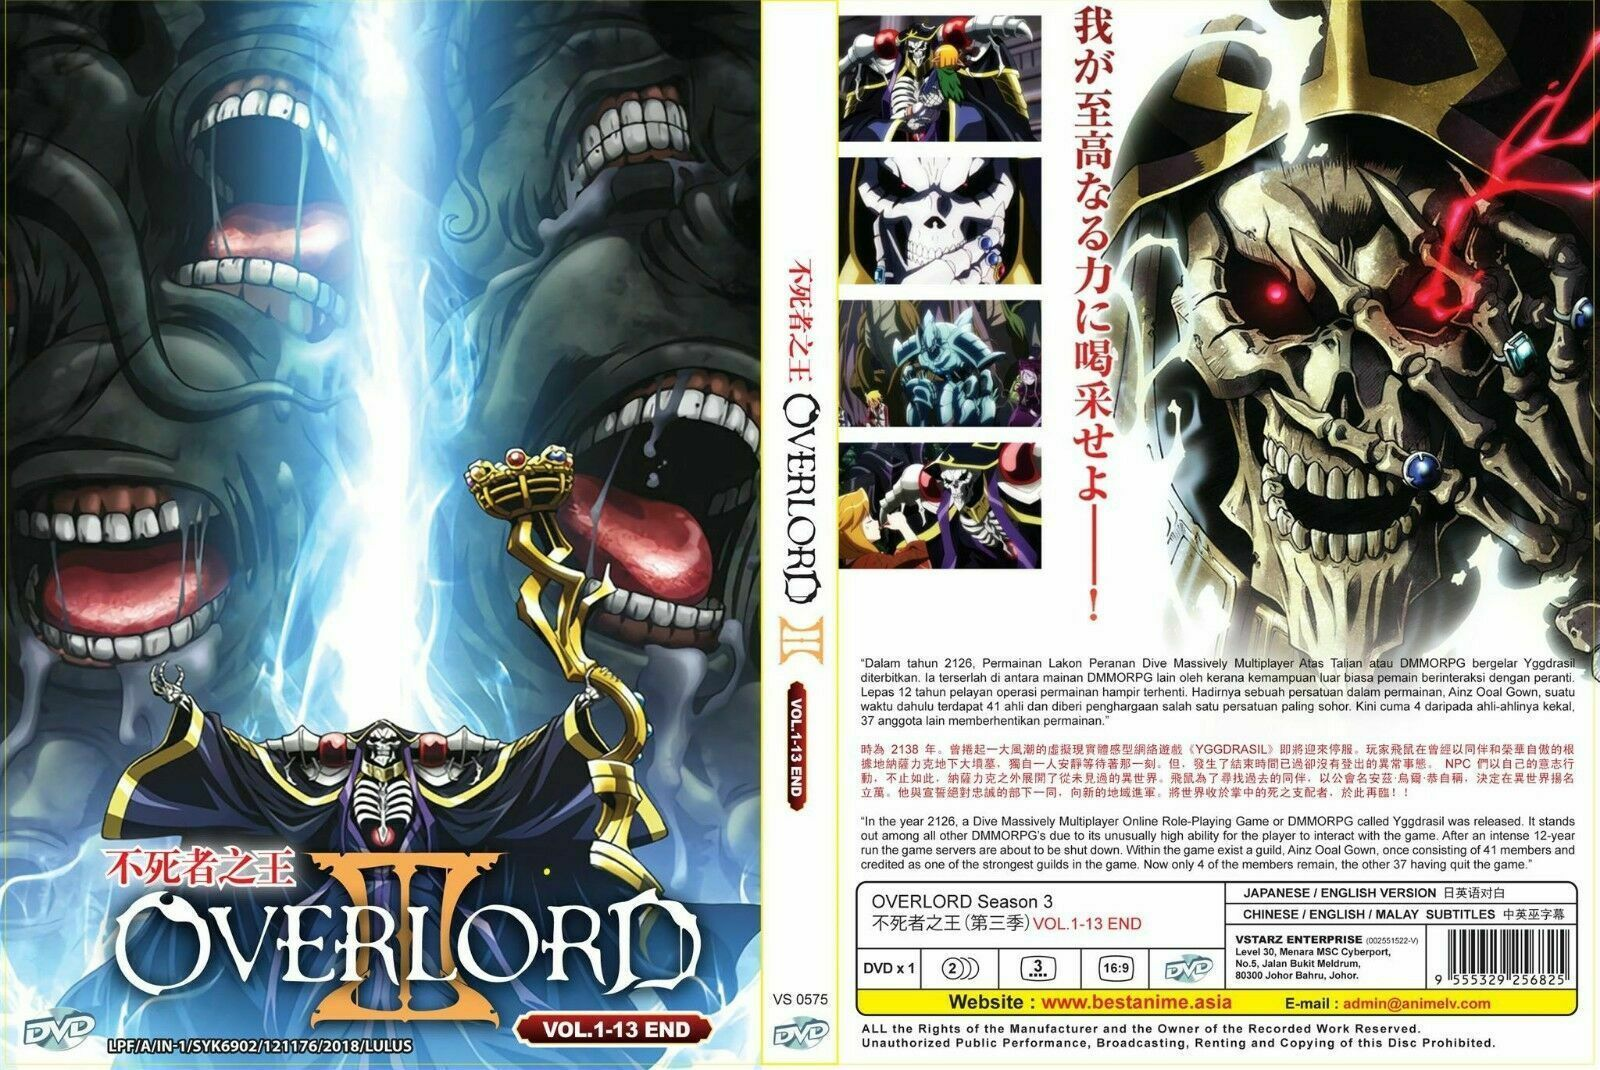 Overlord Season 3 Series (1-13 End) English Dubbed dvd Ship From USA